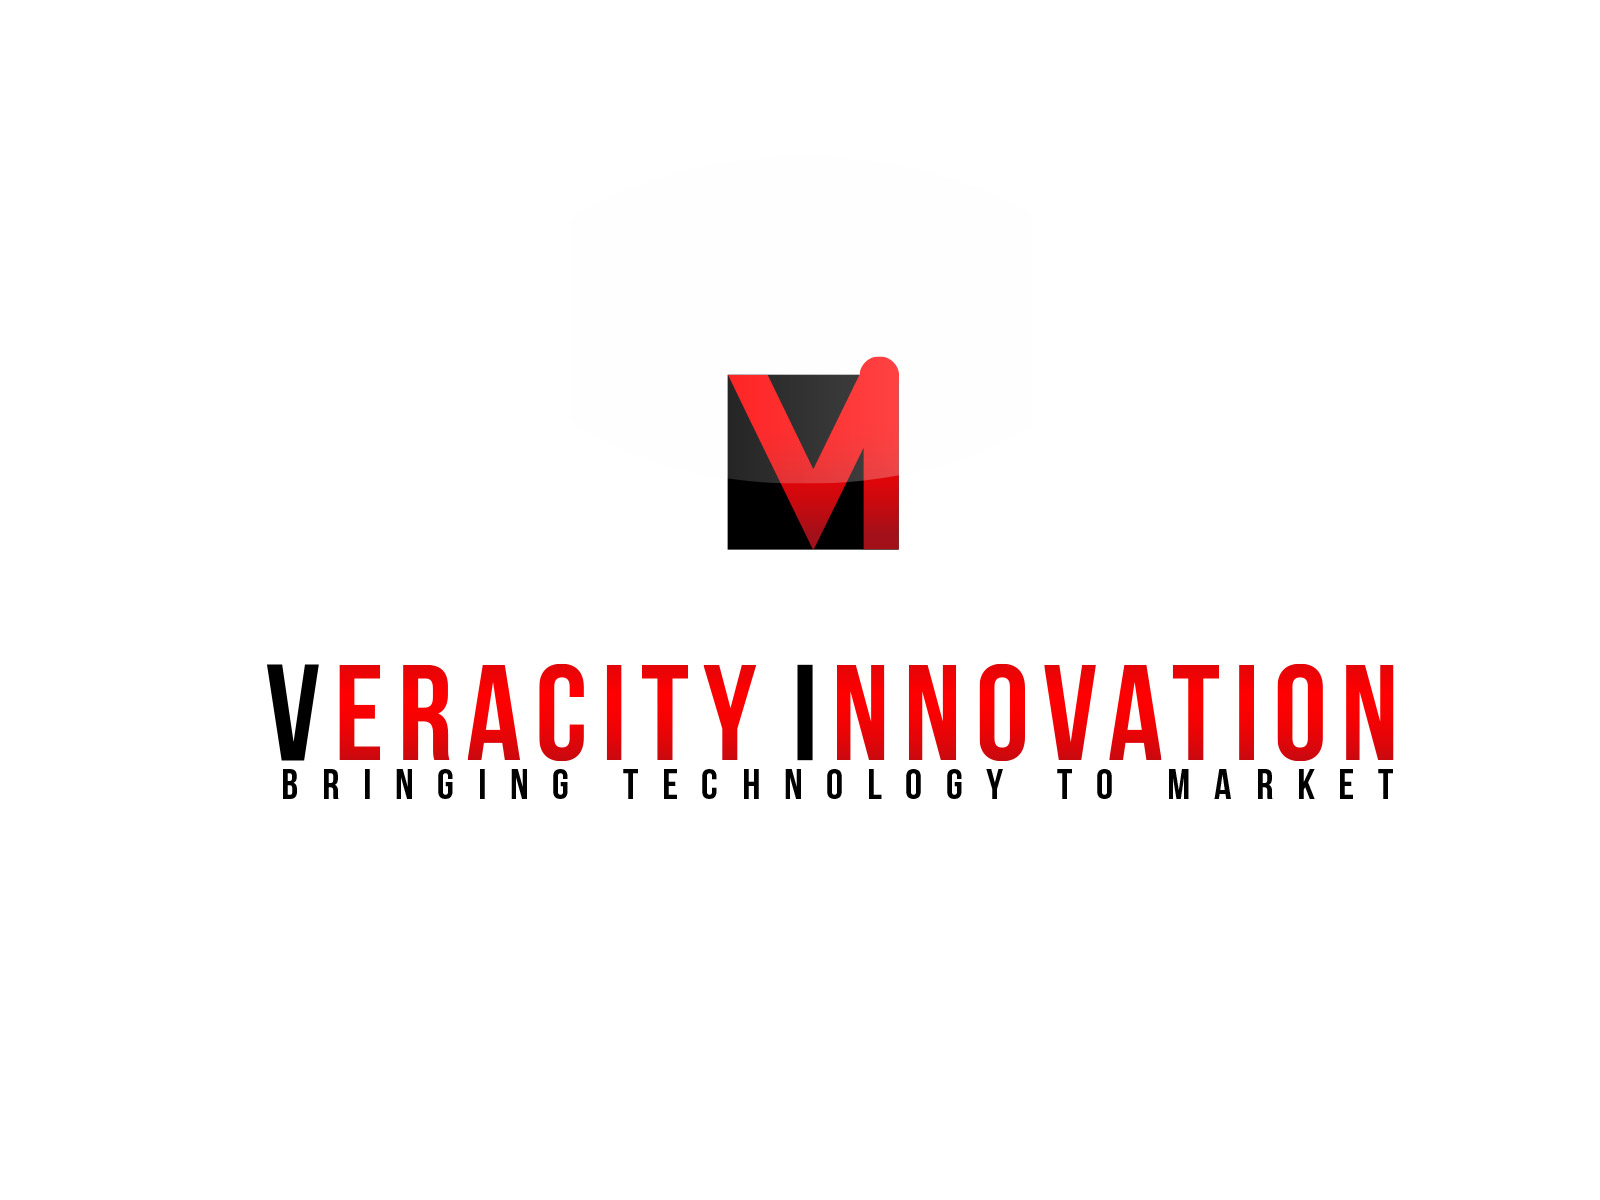 Logo Design by olii - Entry No. 309 in the Logo Design Contest Creative Logo Design for Veracity Innovation, LLC.